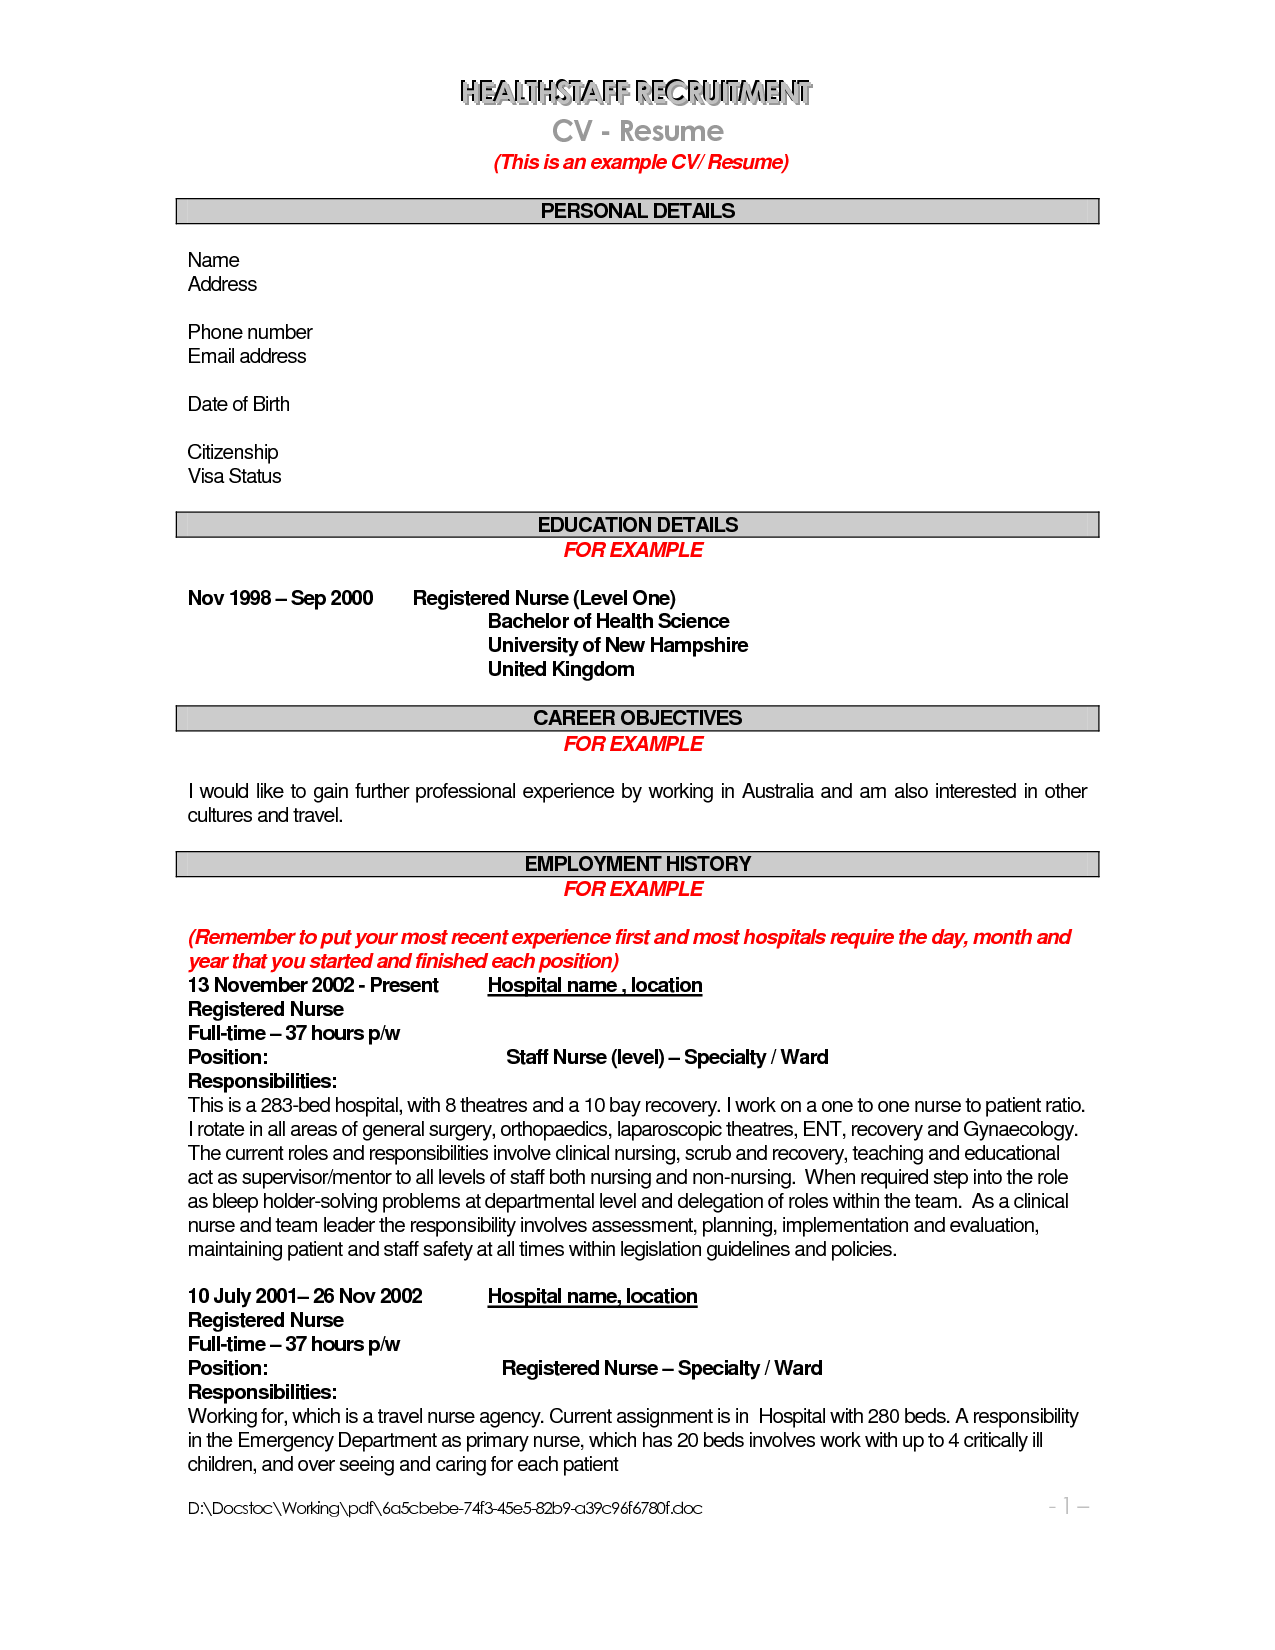 Work Resume Samples Resume Samples For Jobs Australia Example Template Free Cover